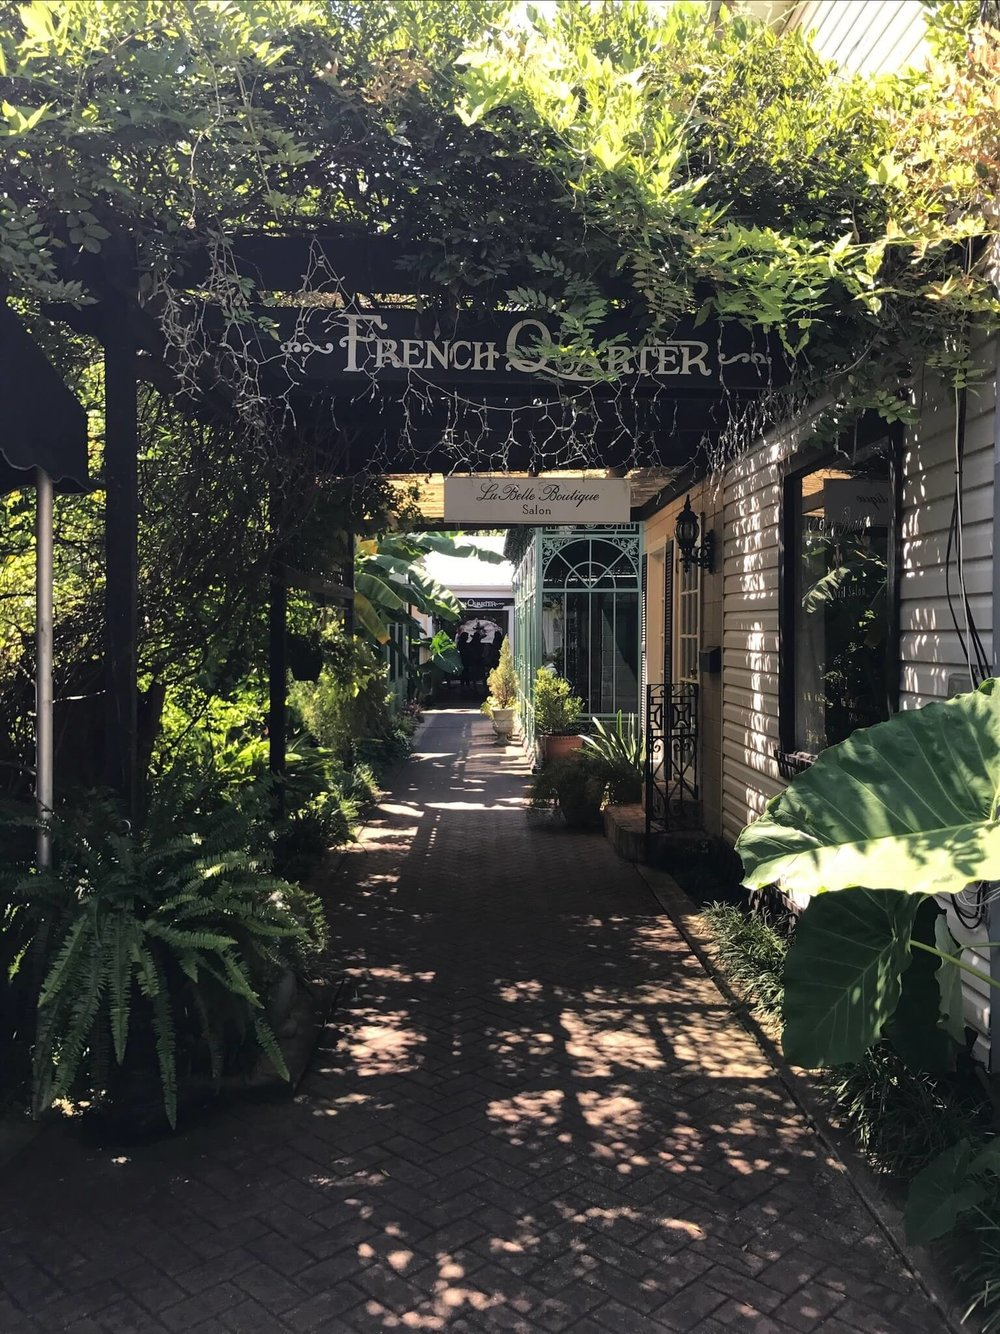 Fairhope French Quarter